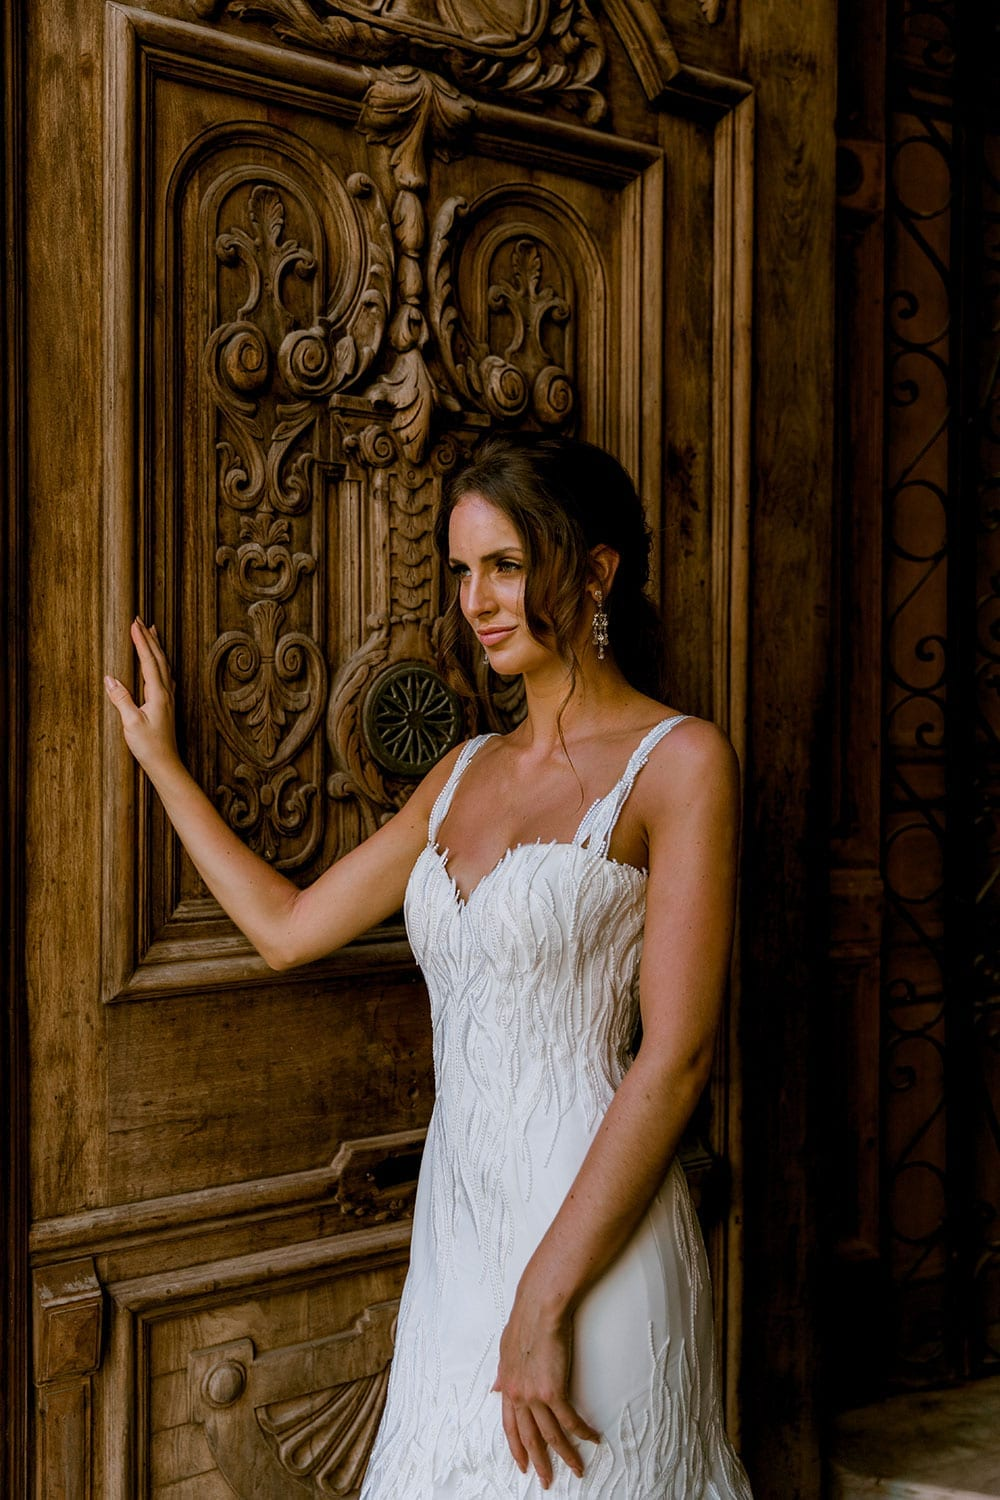 Model wearing Vinka Design Irina Wedding Dress, a n Embroidered Mermaid Lace Wedding Gown in front of a large old open wooden door in Havana close up